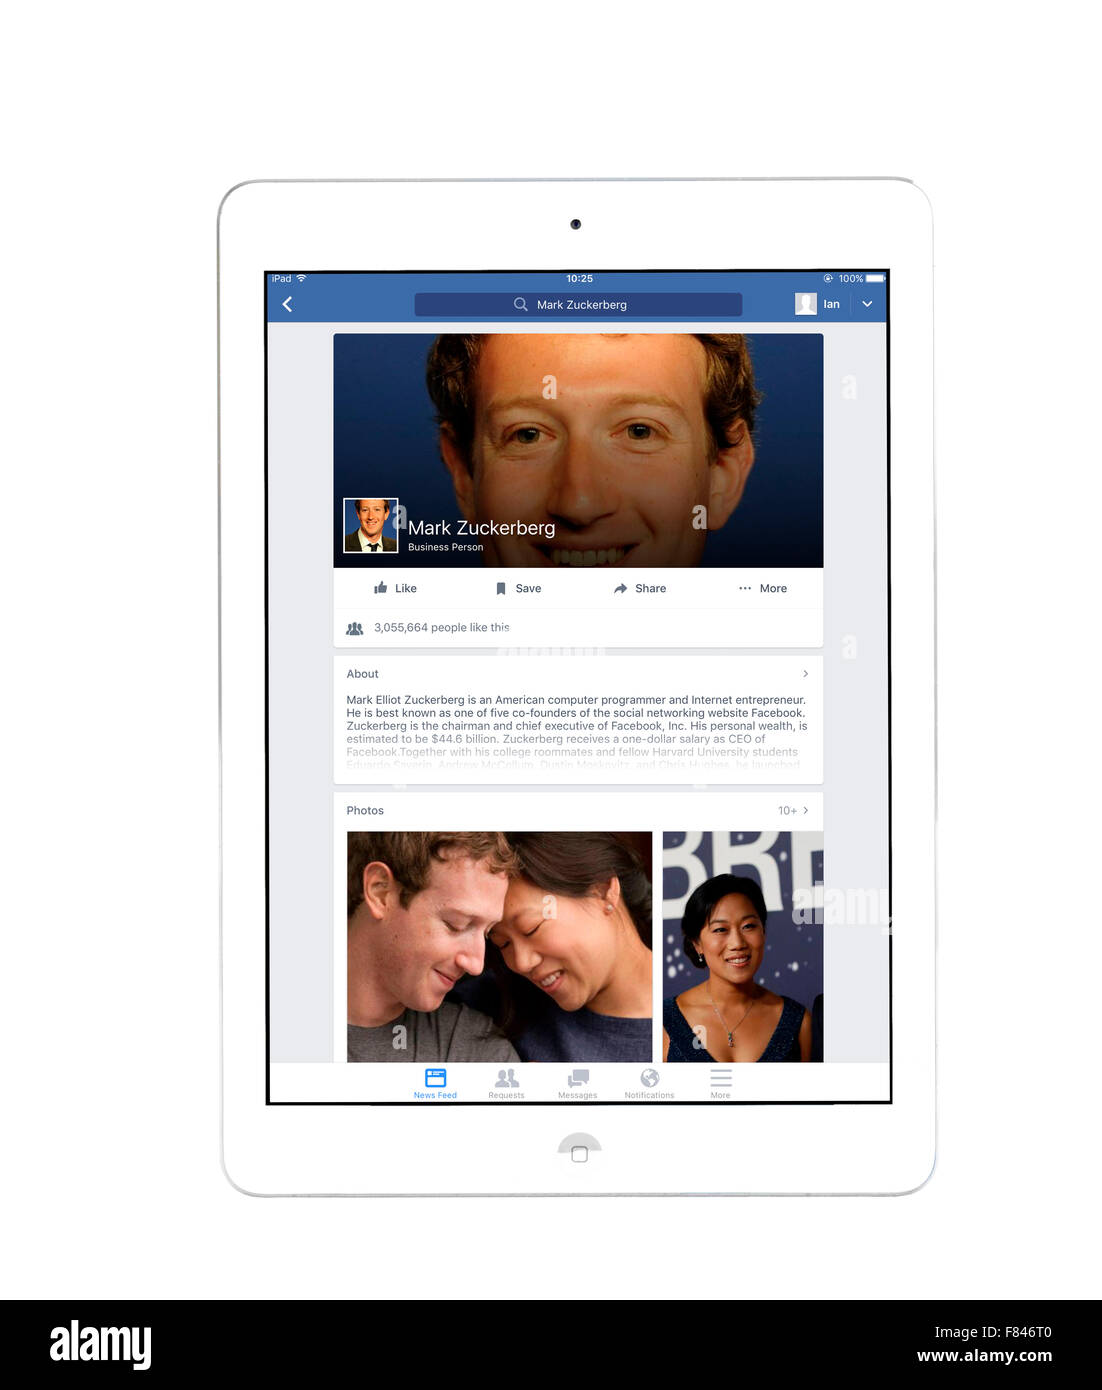 Mark Zuckerberg's home page en la app de Facebook, visto en un iPad Air Imagen De Stock